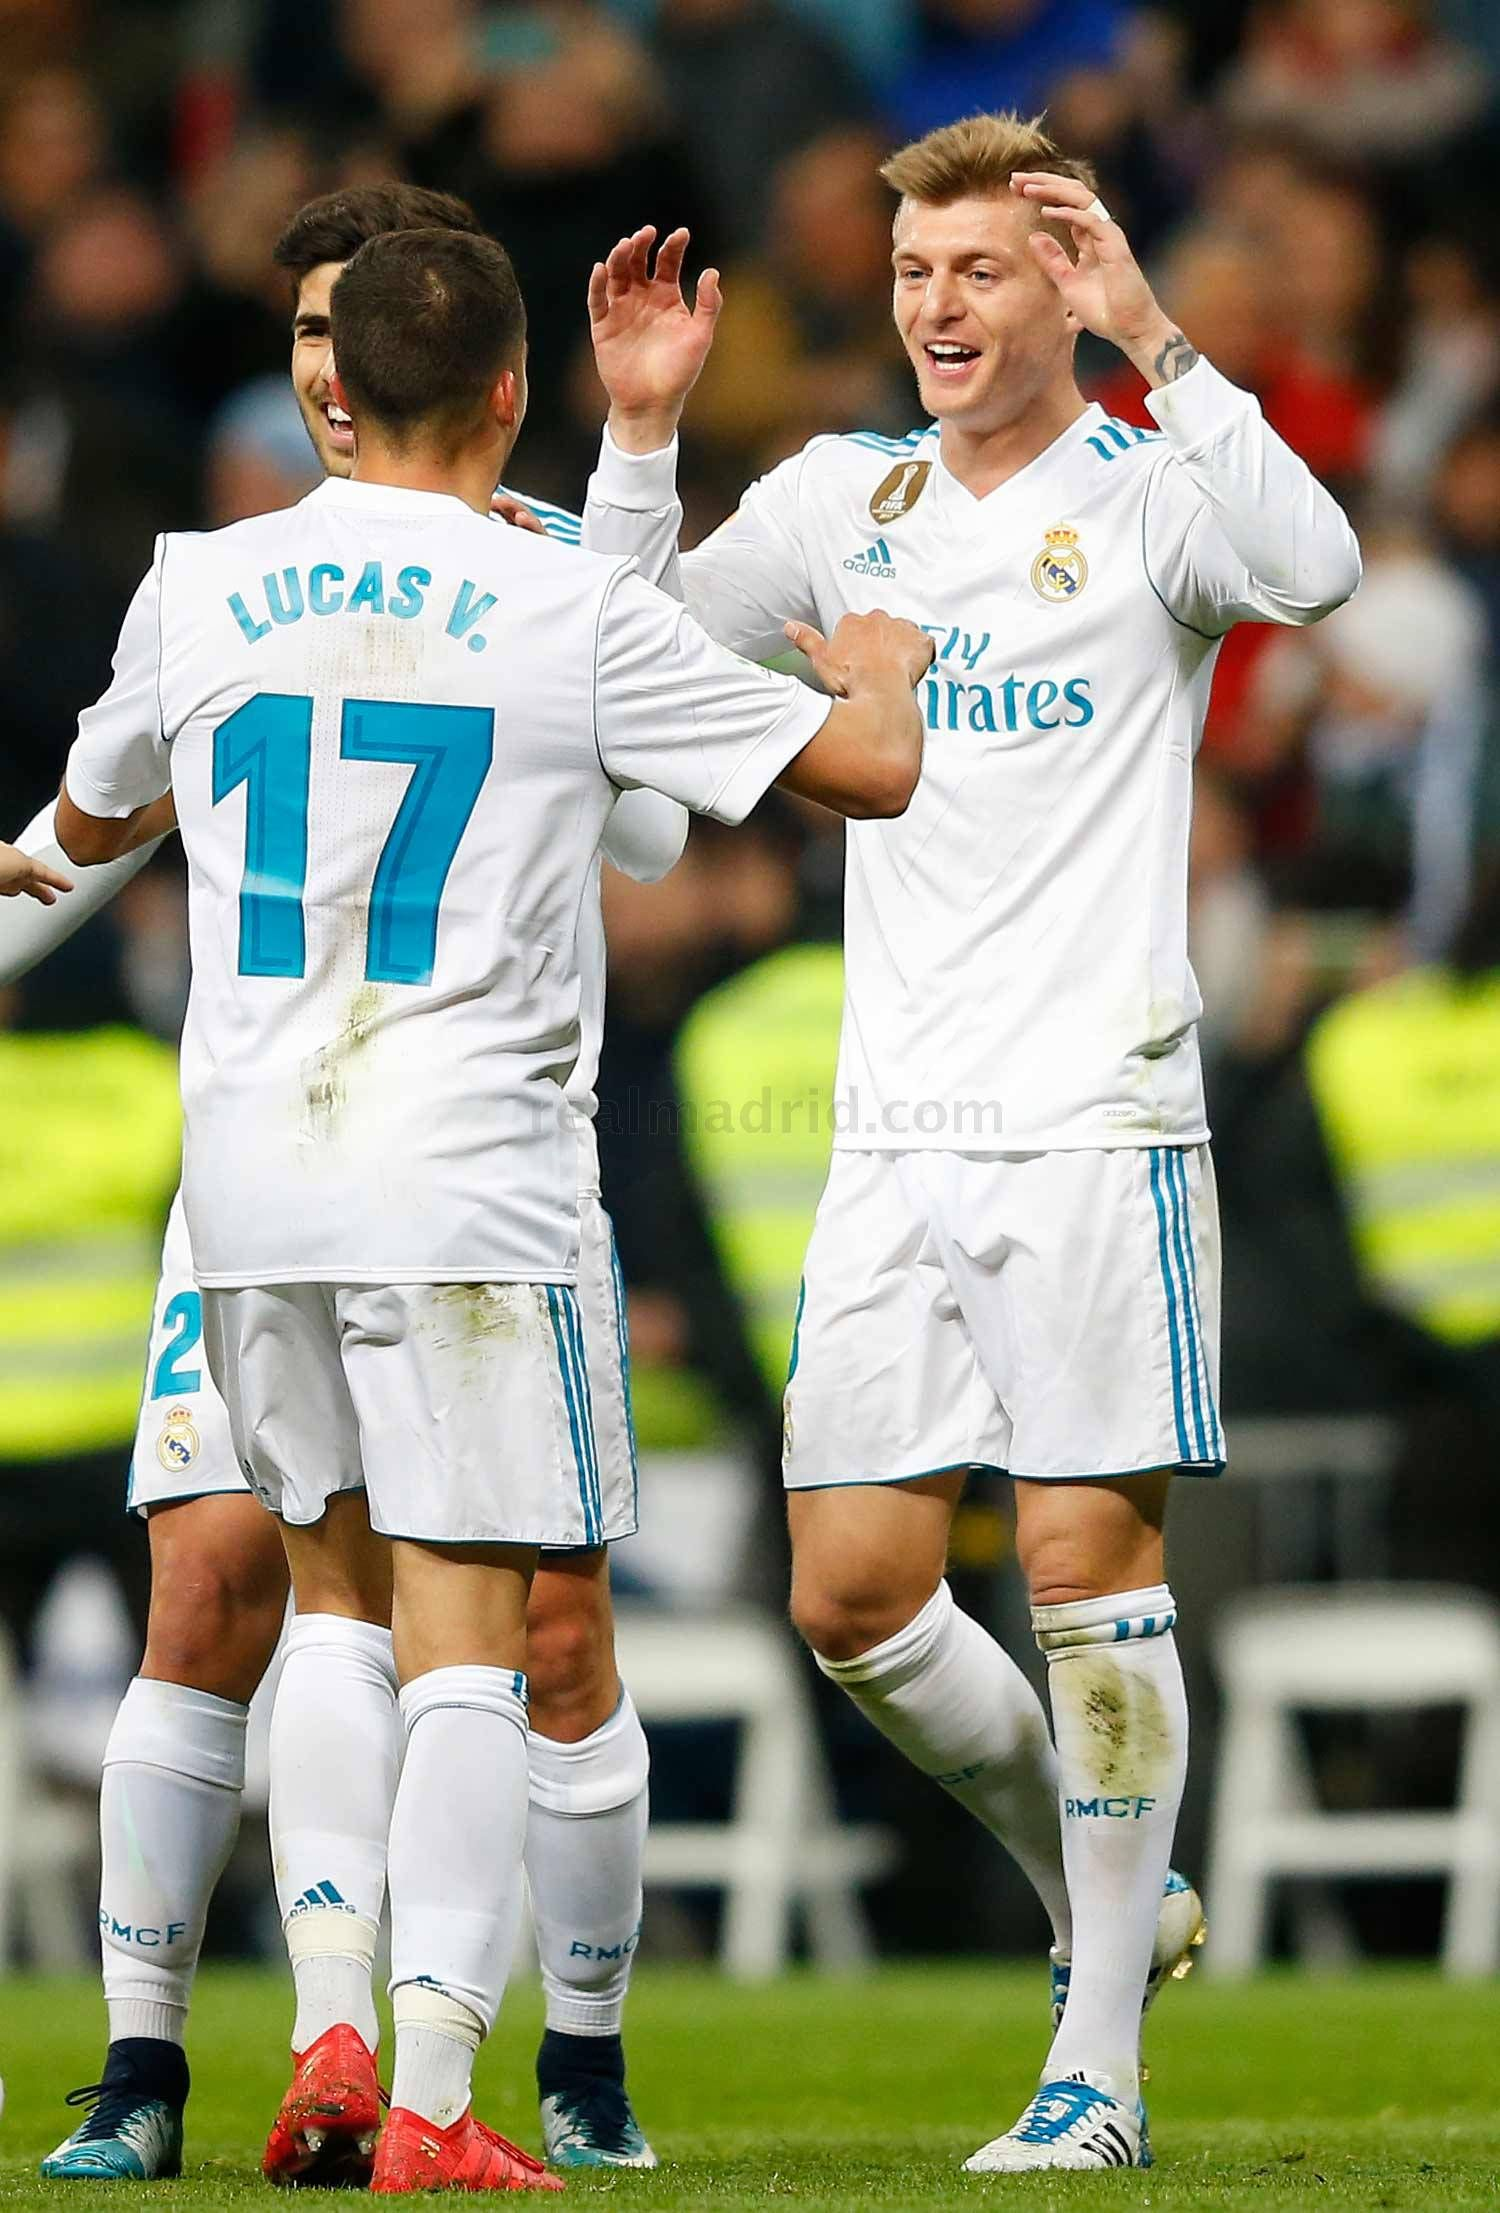 Real Madrid Real Sociedad Photos Real Madrid Cf Real Madrid Toni Kroos Ronaldo Real Madrid